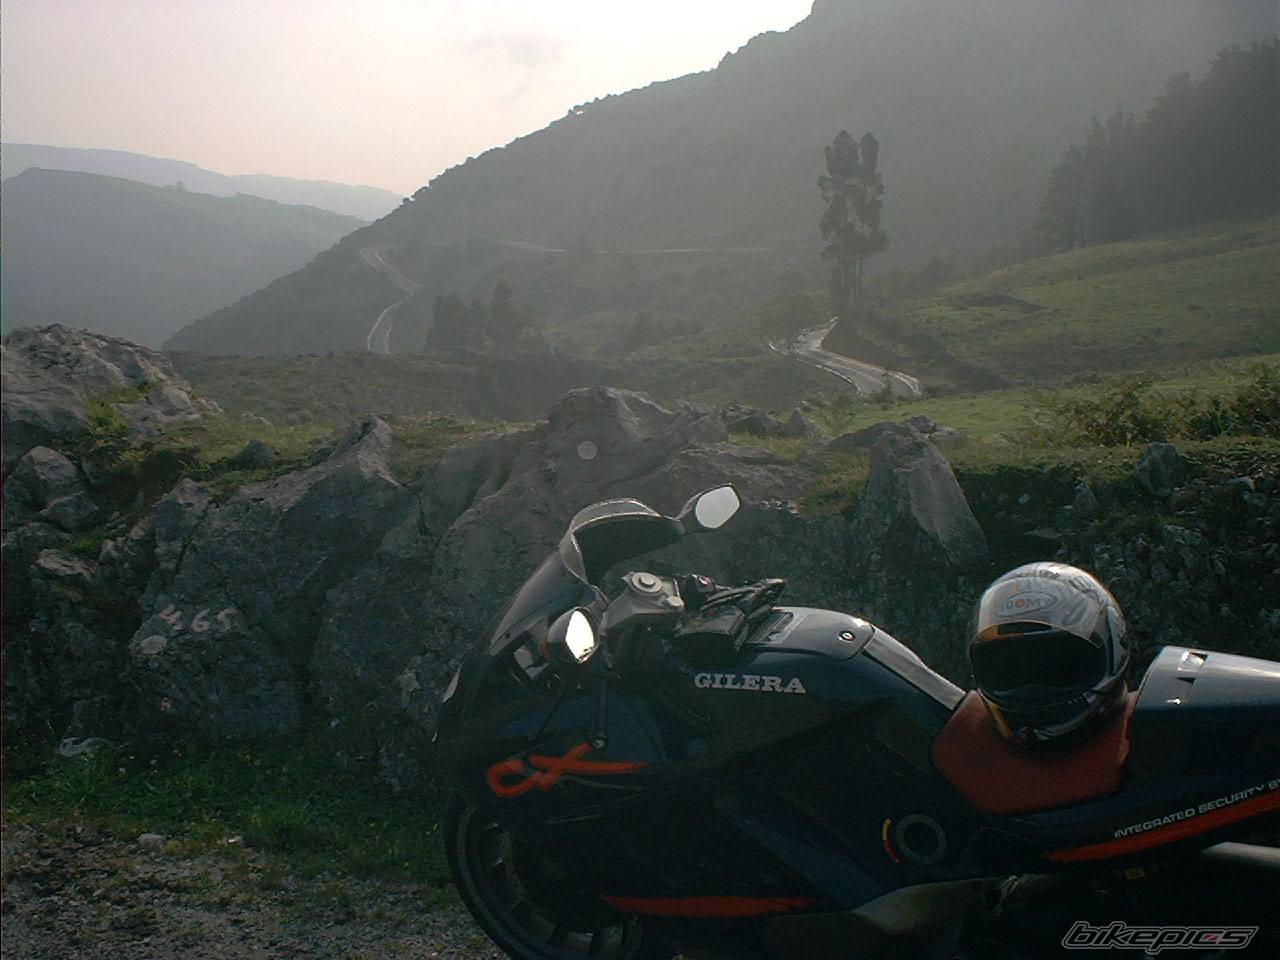 1994 GILERA CX 125 | Picture 171181 motorcycle photo